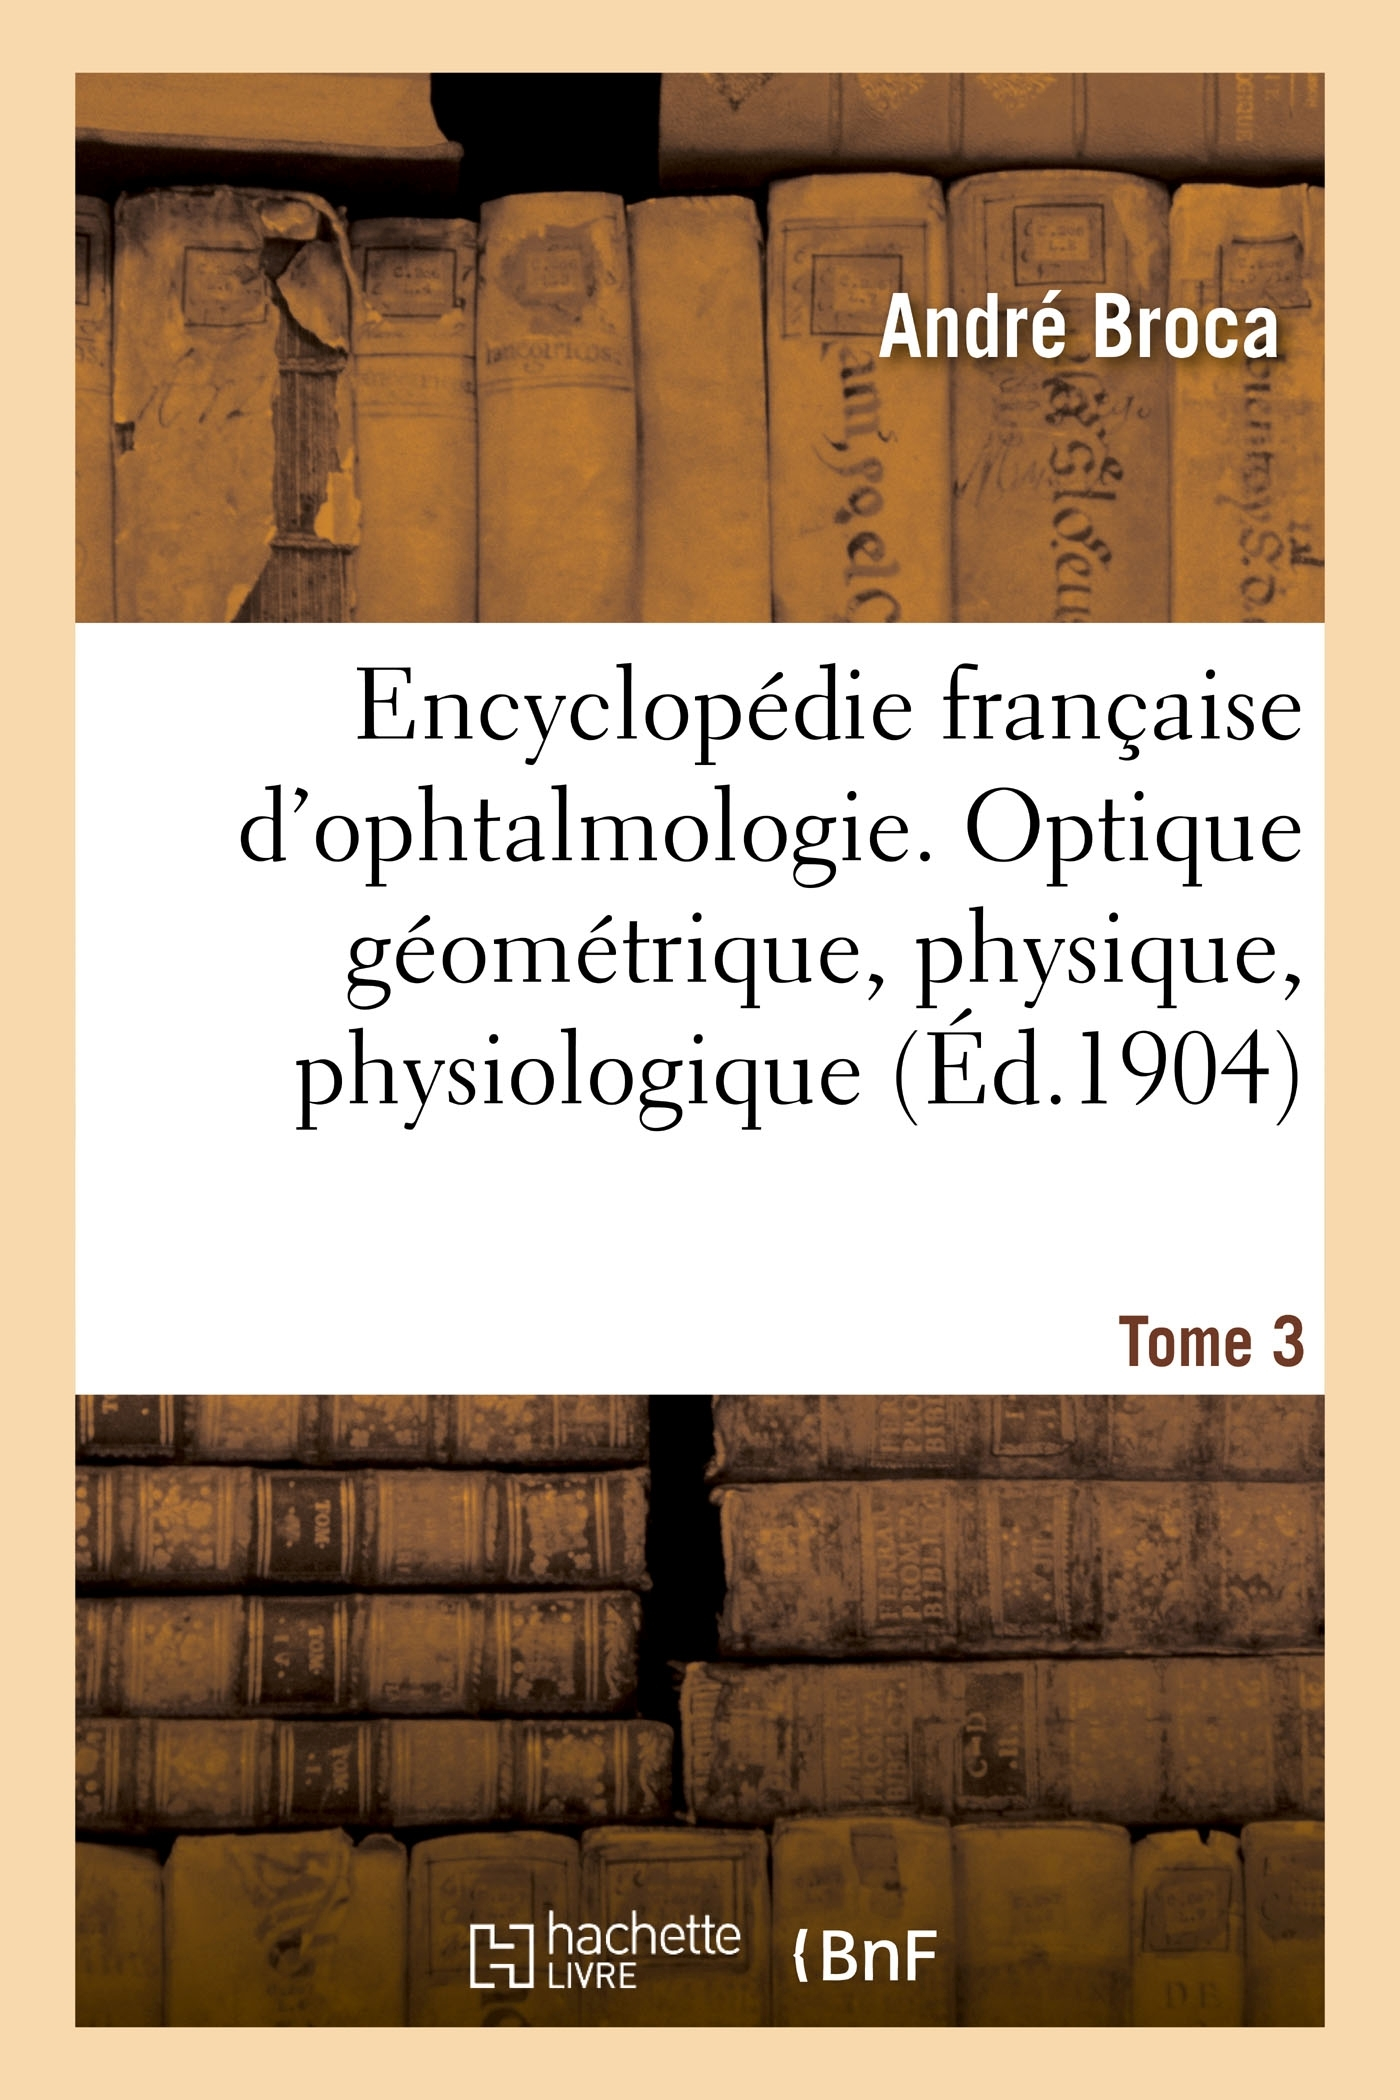 ENCYCLOPEDIE FRANCAISE D'OPHTALMOLOGIE. TOME 3